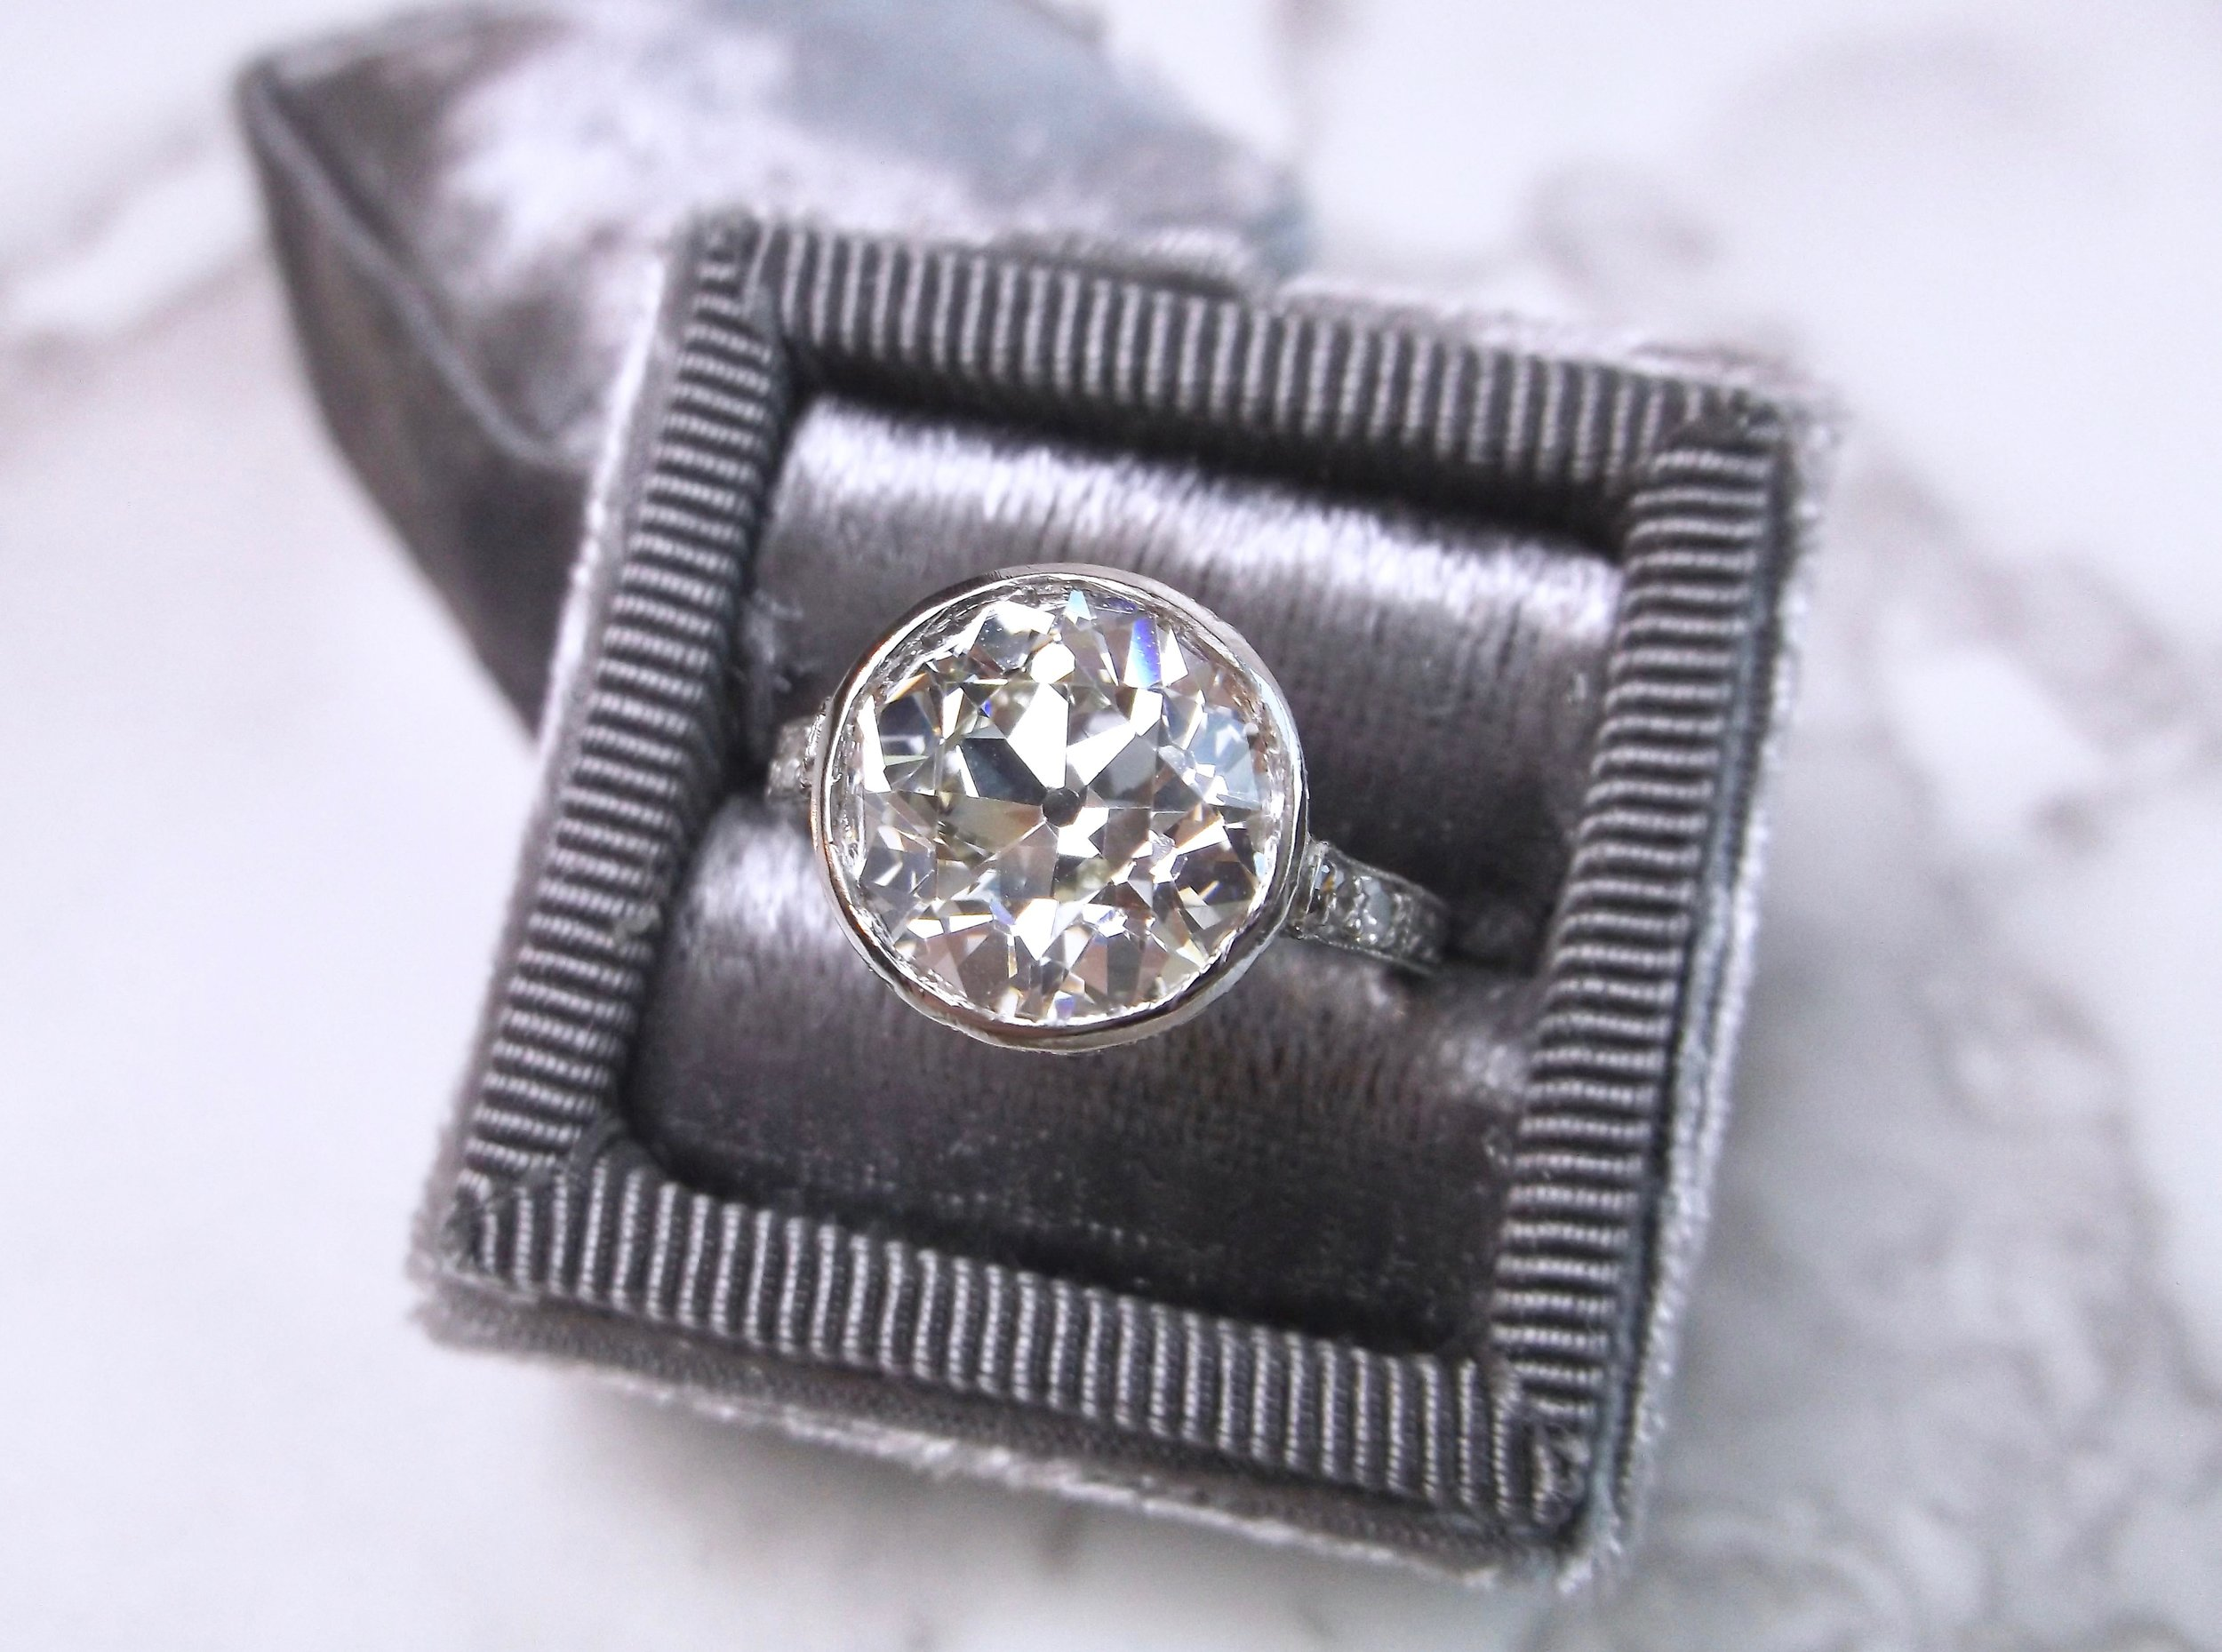 Jaw droppingly gorgeous 4.07 carat Old European cut diamond ring set in a beautifully detailed platinum setting.  Shop this stunner  HERE .